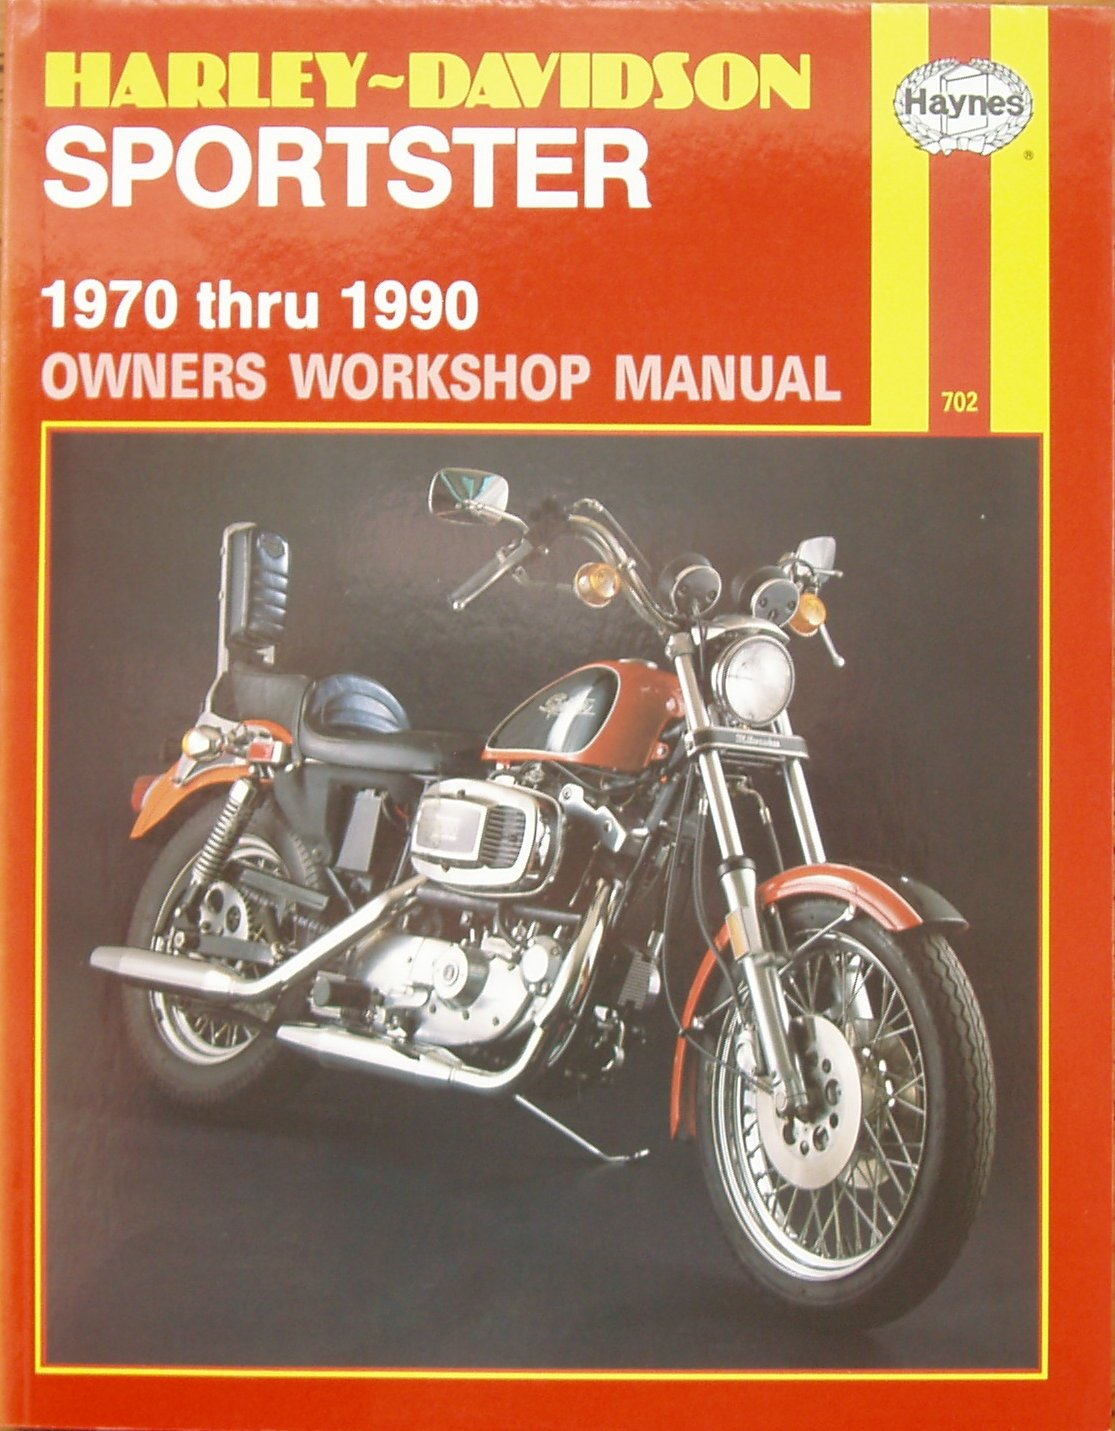 Harley-Davidson Sportster Owners Workshop Manual (Haynes motorcycle repair  manual series): J. H. Haynes, Tom Schauwecker, Curt Choate: 9781850105985:  ...